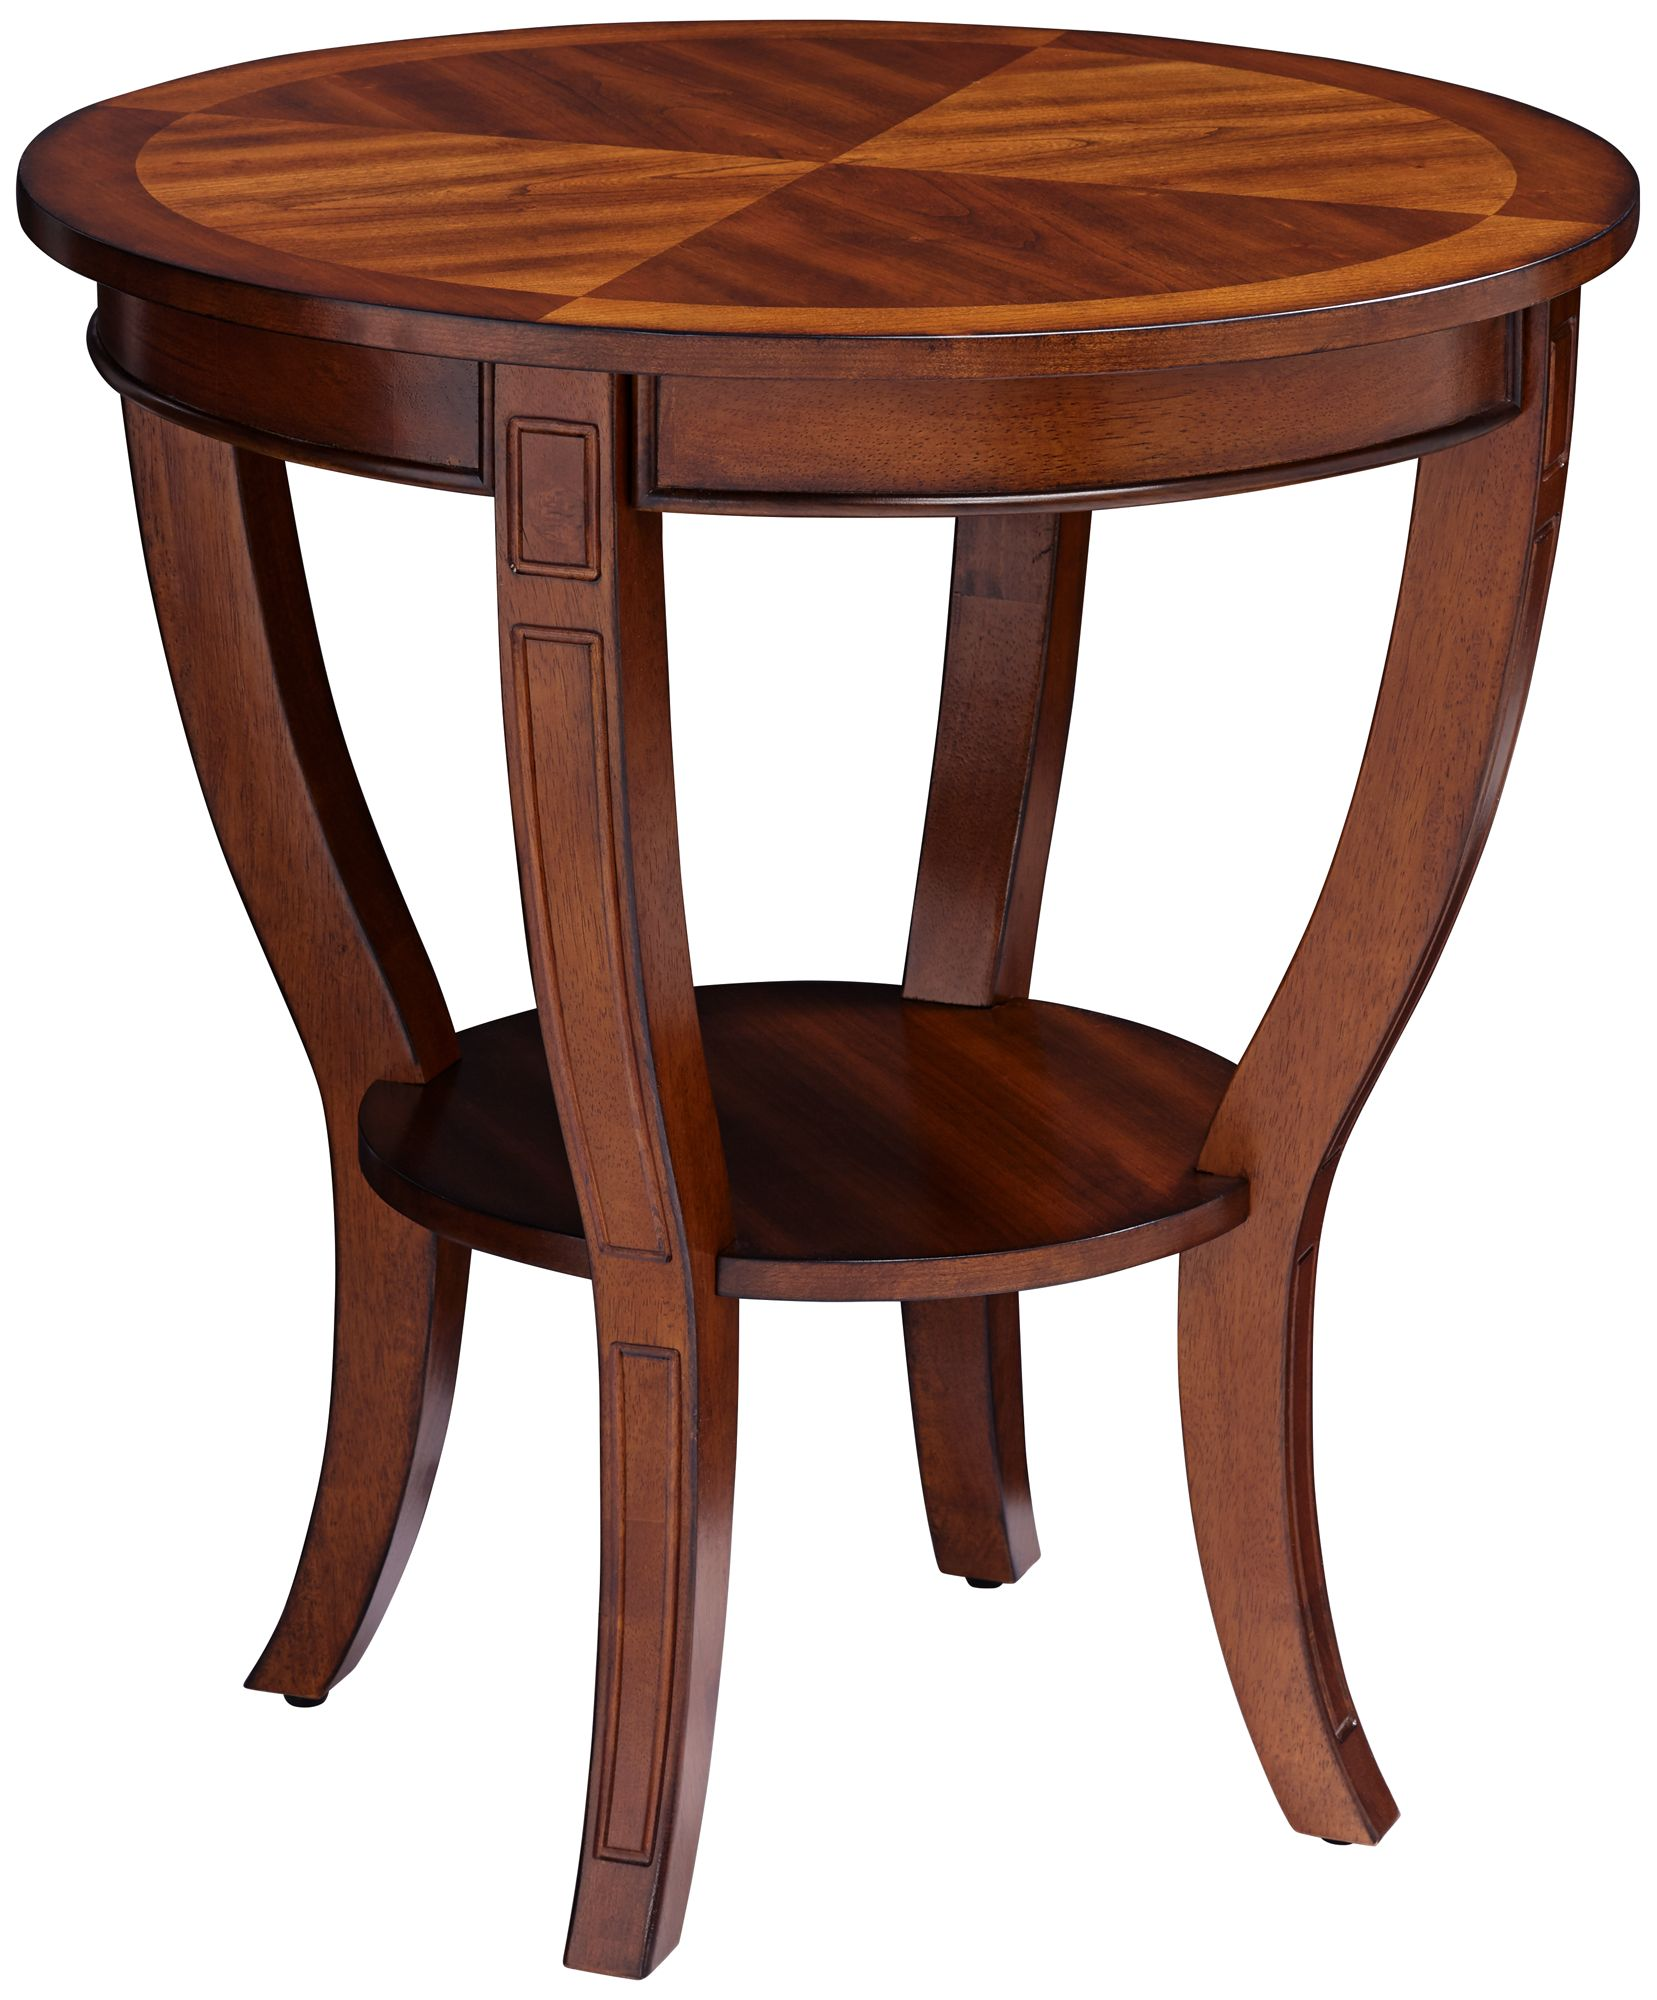 Patterson II Americana Cherry Round Wood End Table